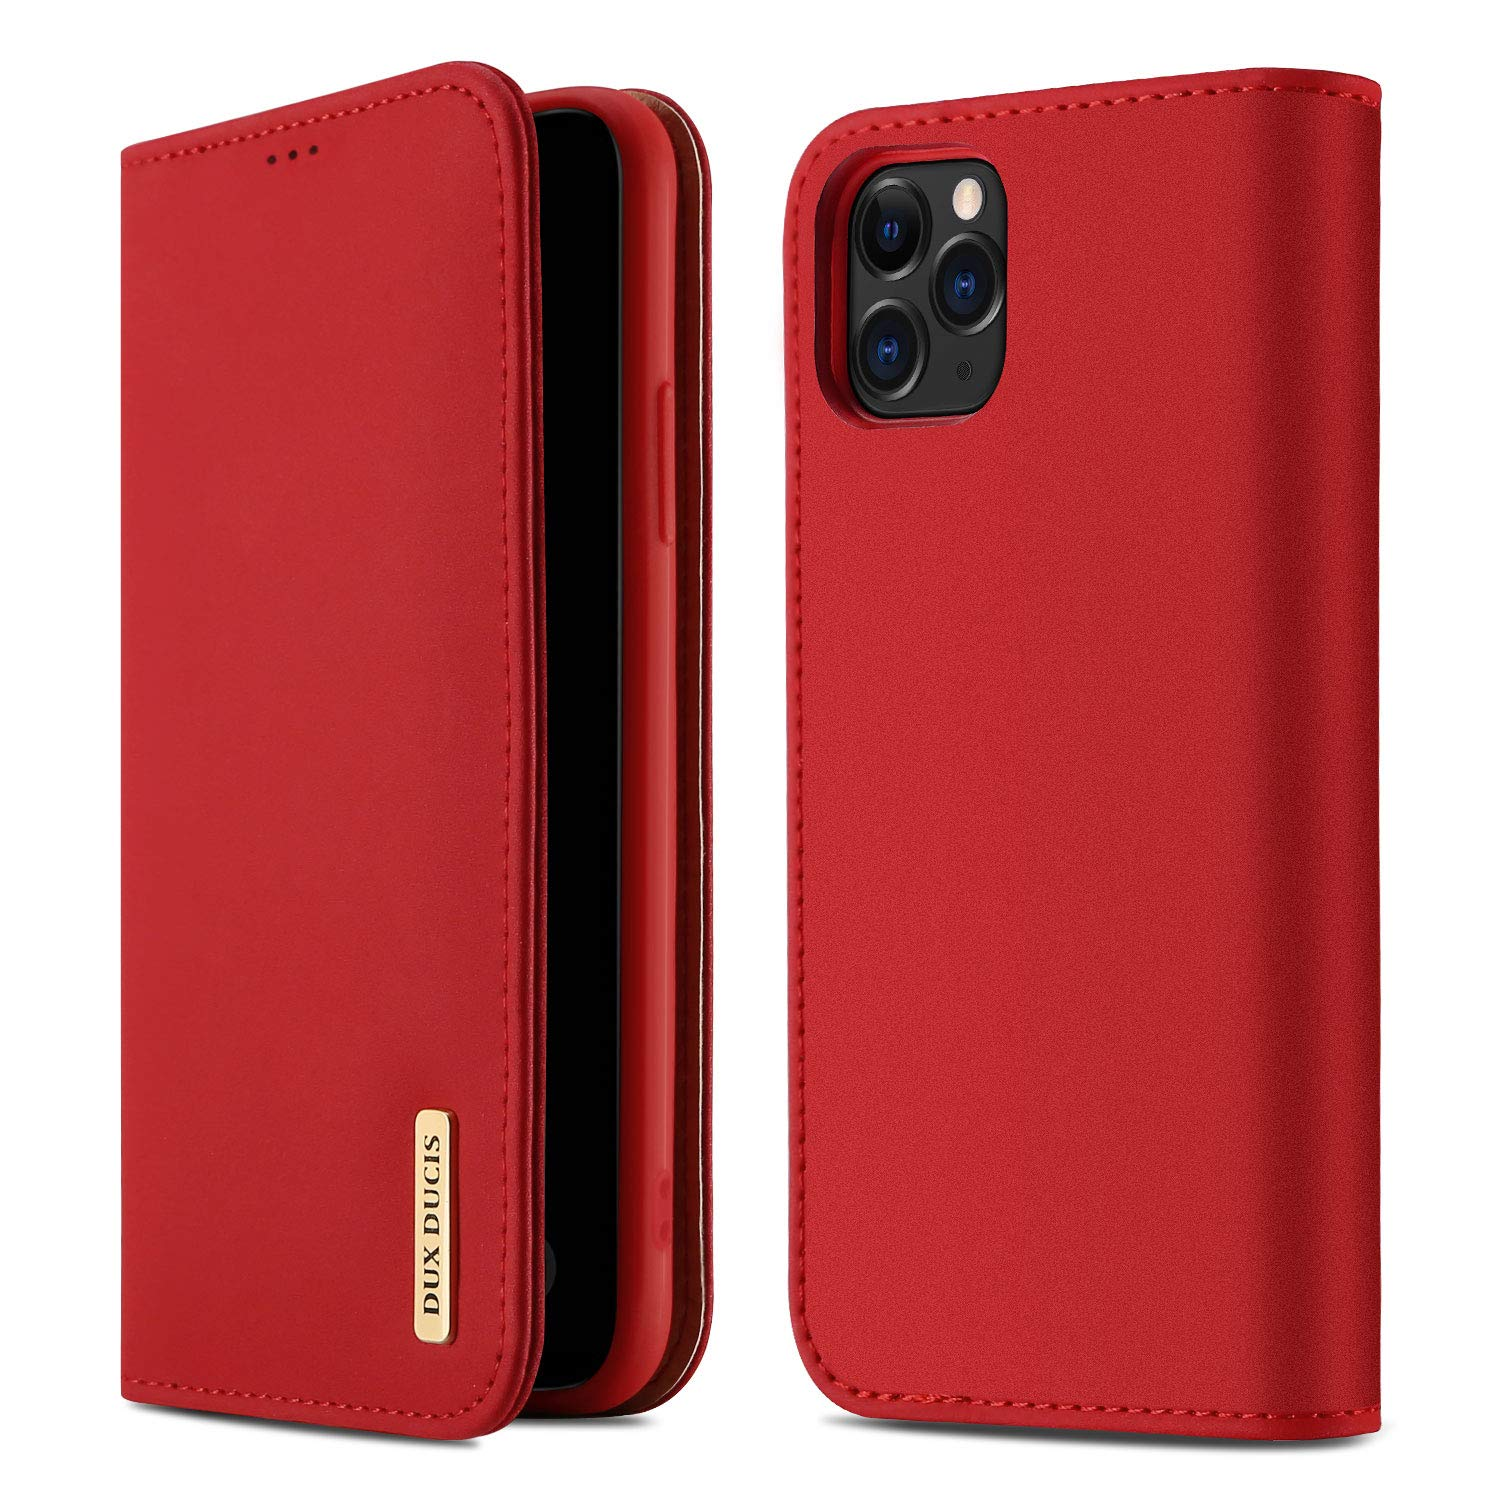 DUX DUCIS iPhone 11 Pro Max Wallet Case, Genuine Leather Flip Folio Wallet Case with Card Slots, Magnetic Closure,Kickstand Function,Durable Shockproof Cover for iPhone 11 Pro Max(Red)